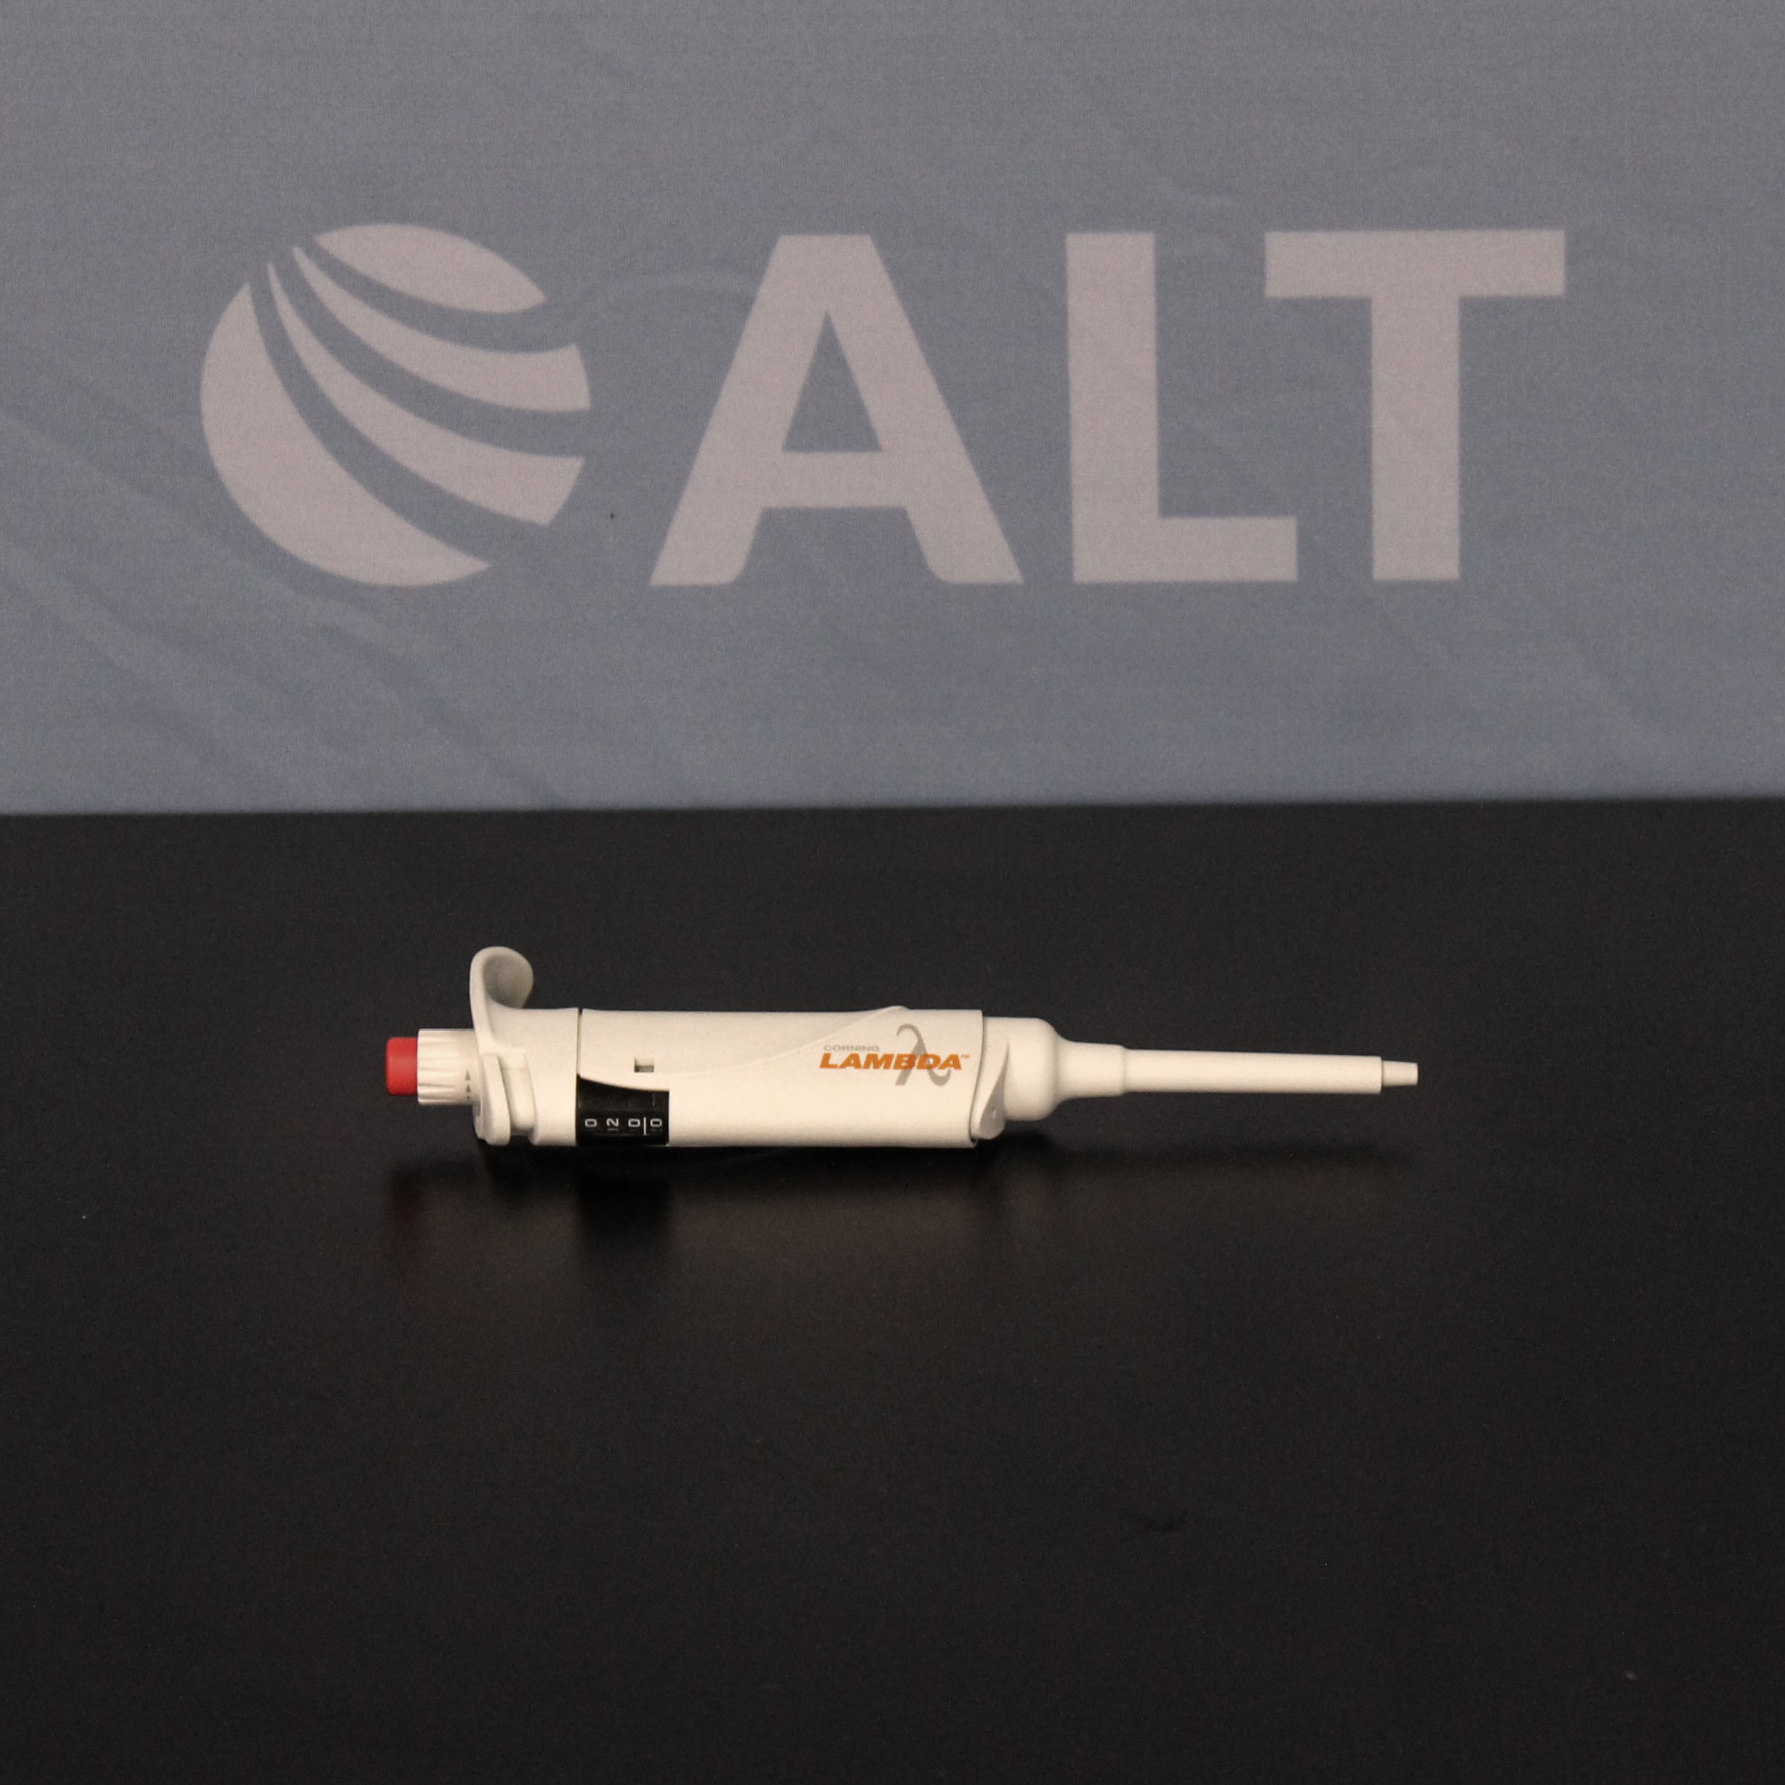 Corning Lambda Single-Channel Pipette, 20-200ul Image